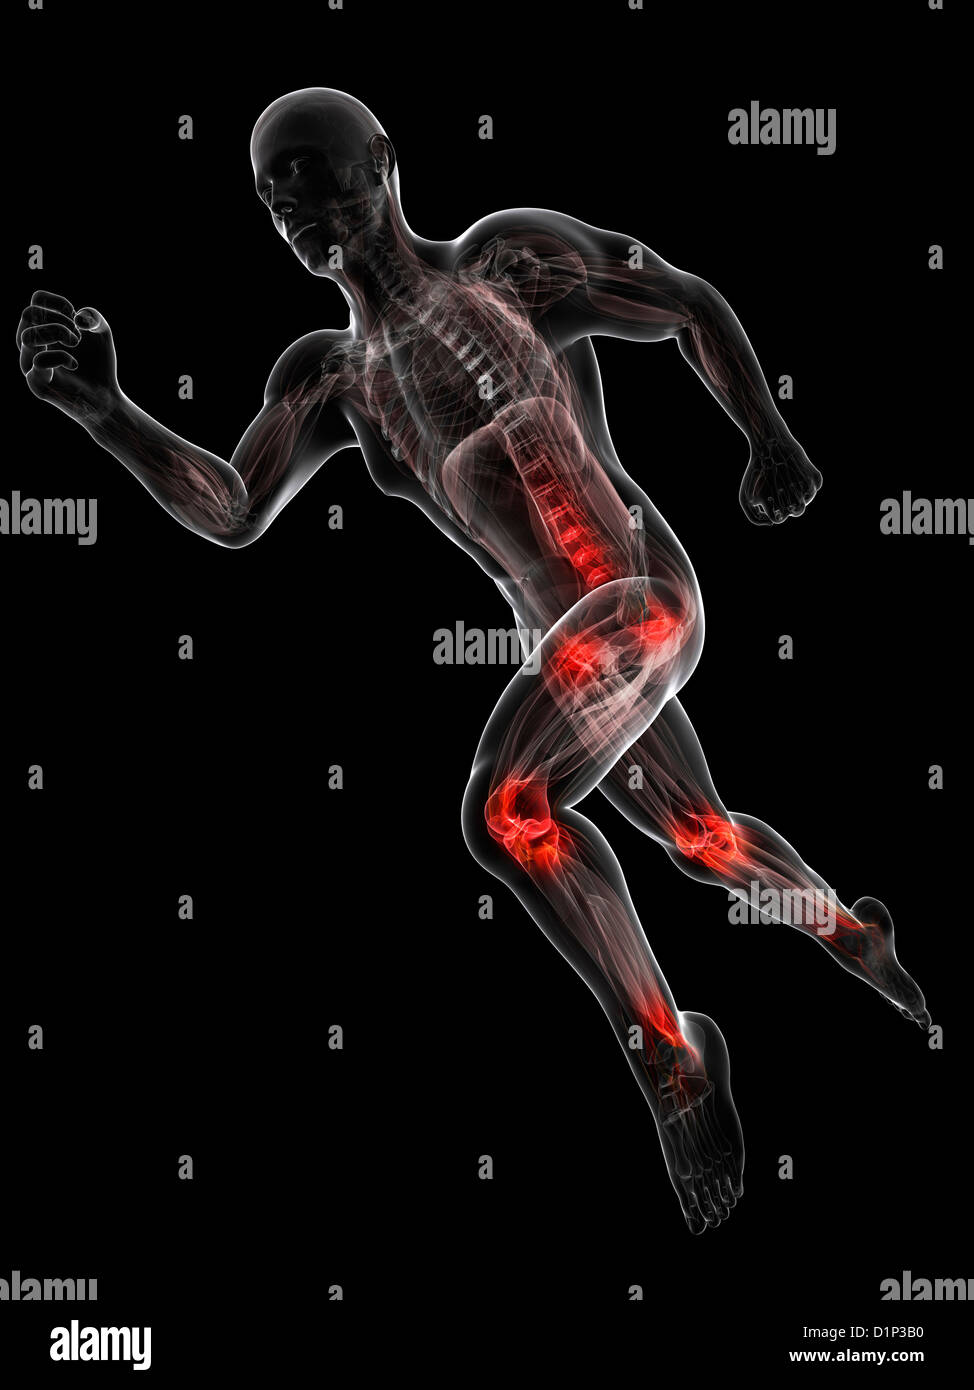 Running injuries, conceptual artwork - Stock Image